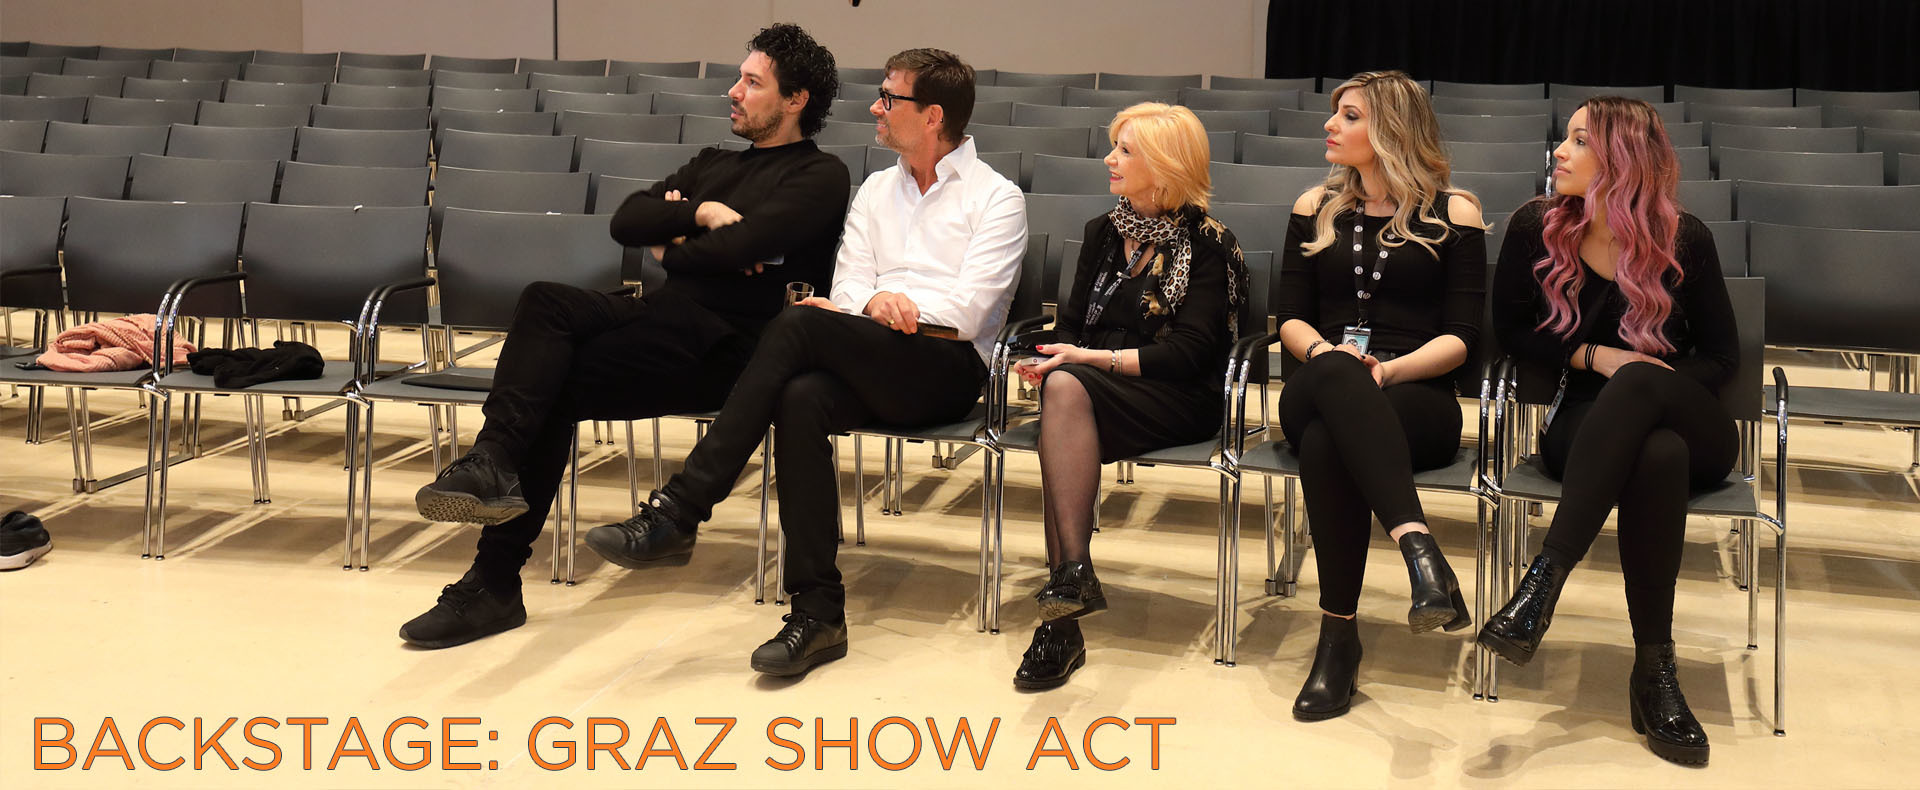 BACKSTAGE: Graz Show Act (© Great Lengths)